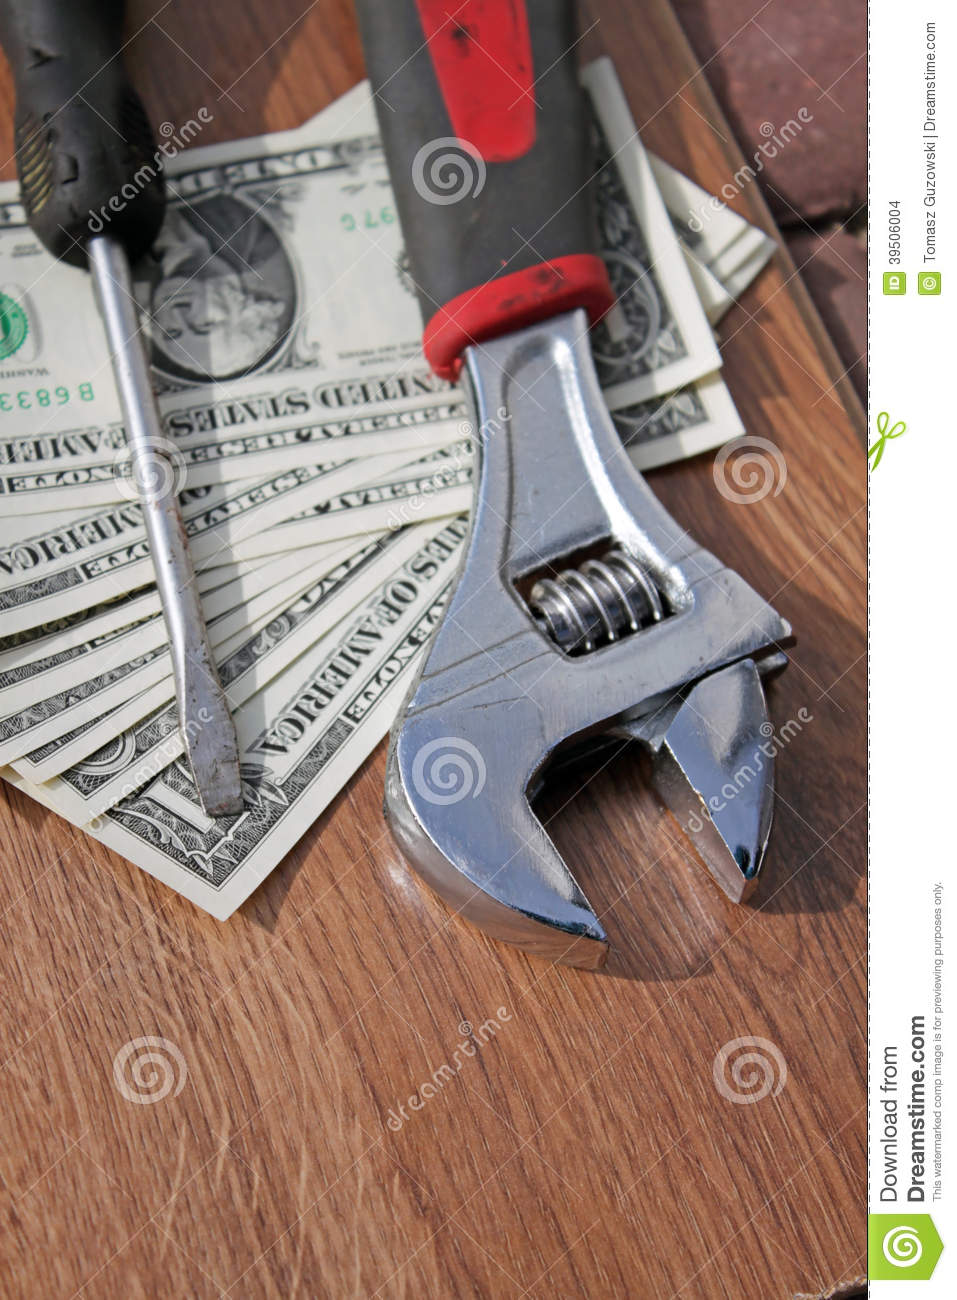 Wrench, screwdriver and dollars